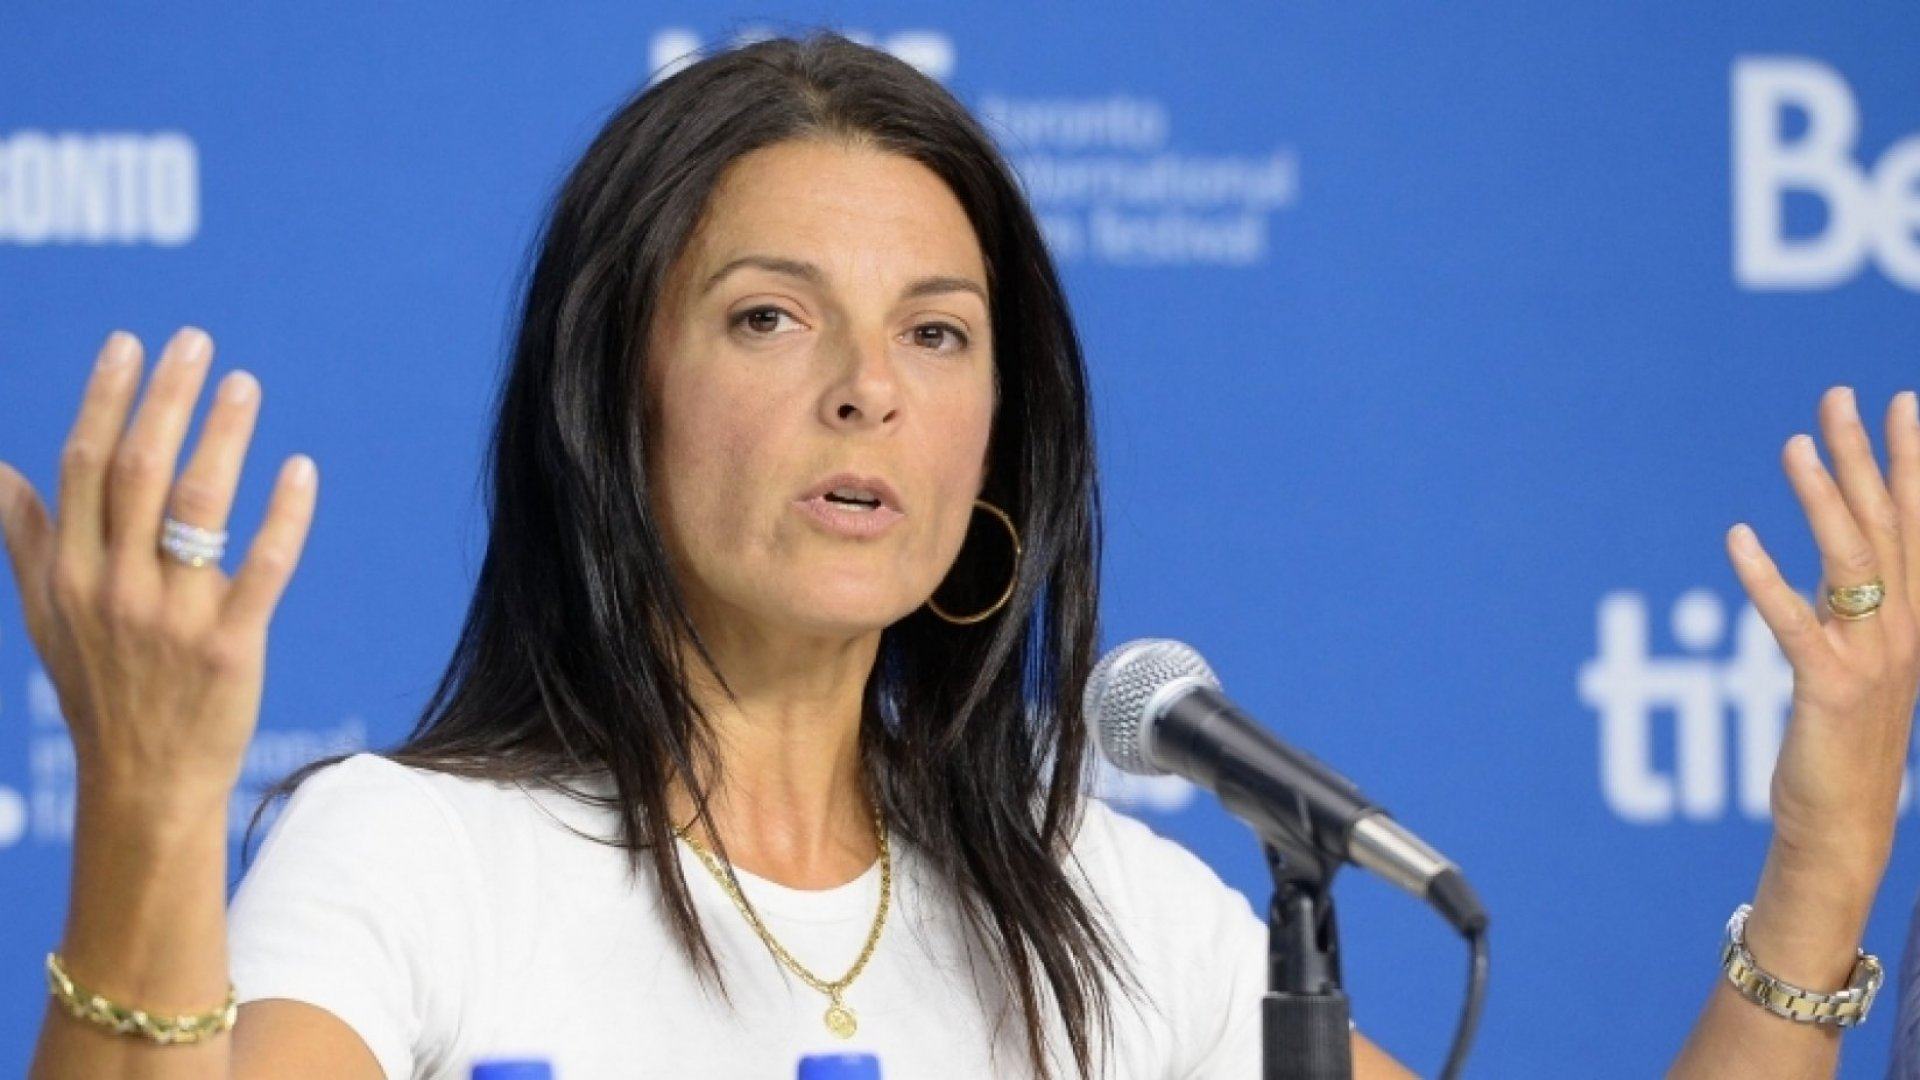 6 Key Lessons From the Woman Who Refused to Back Down From Lance Armstrong